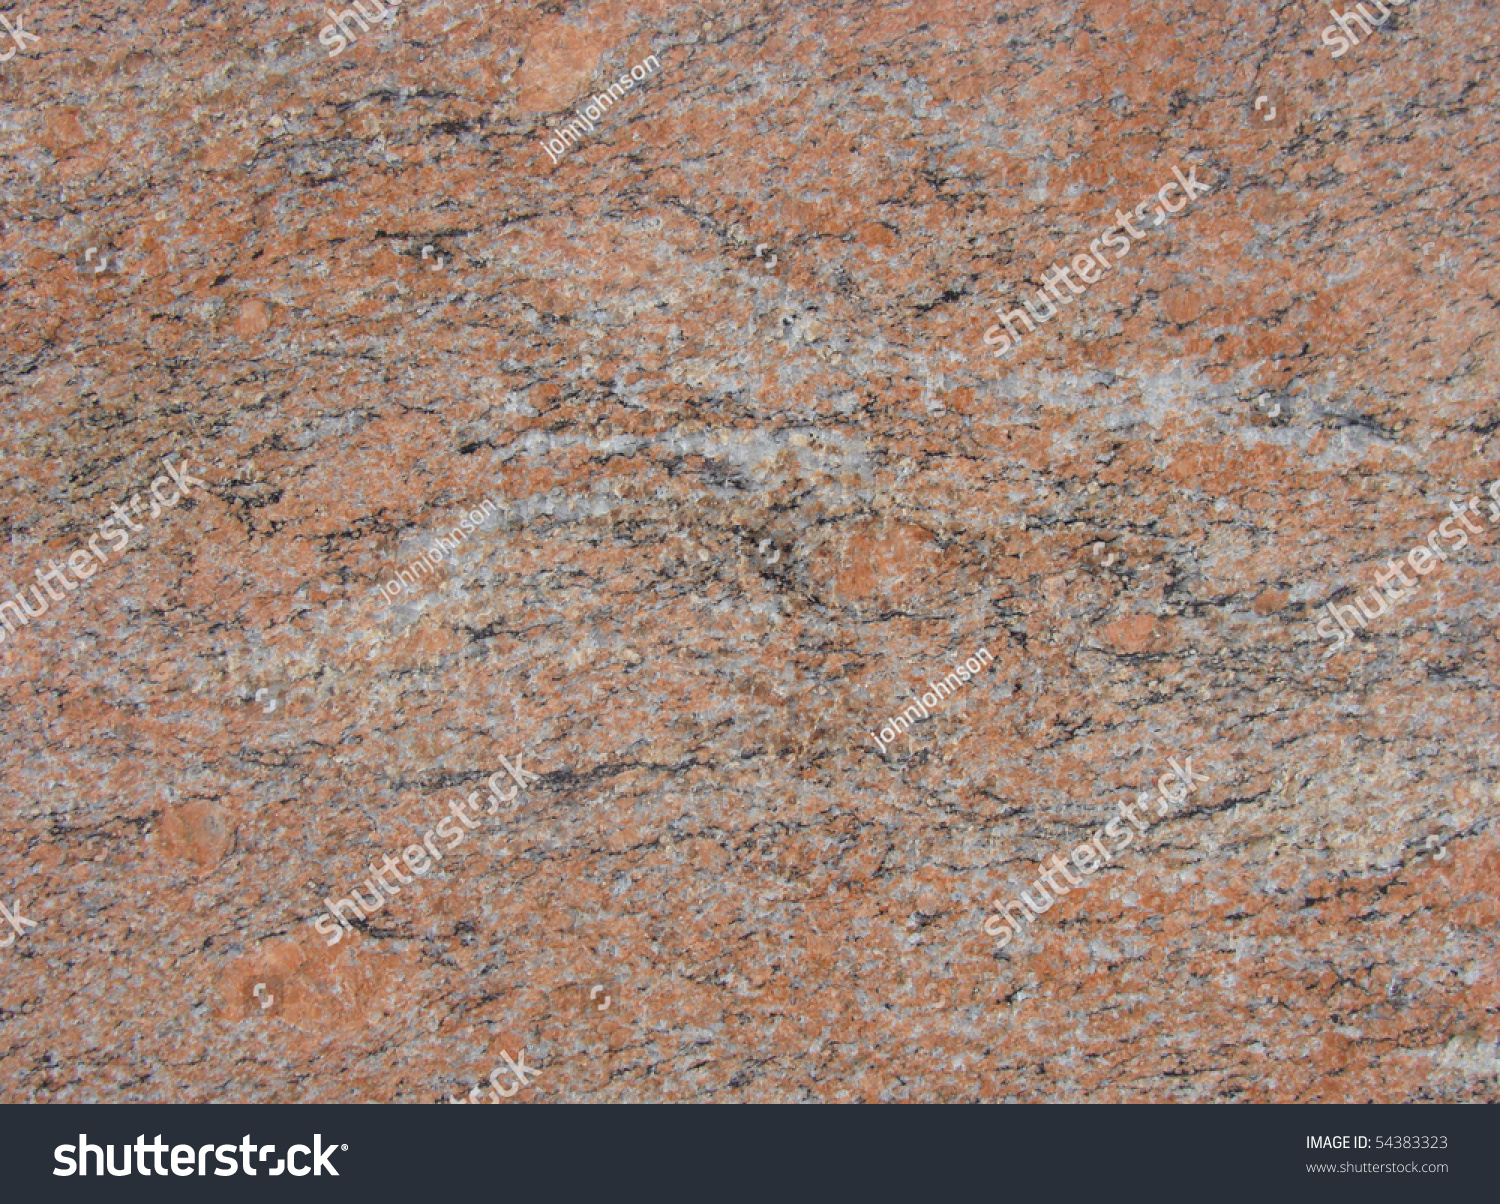 Orange And White Marble Slab : Orange black white wavy marble sheet slab stock photo